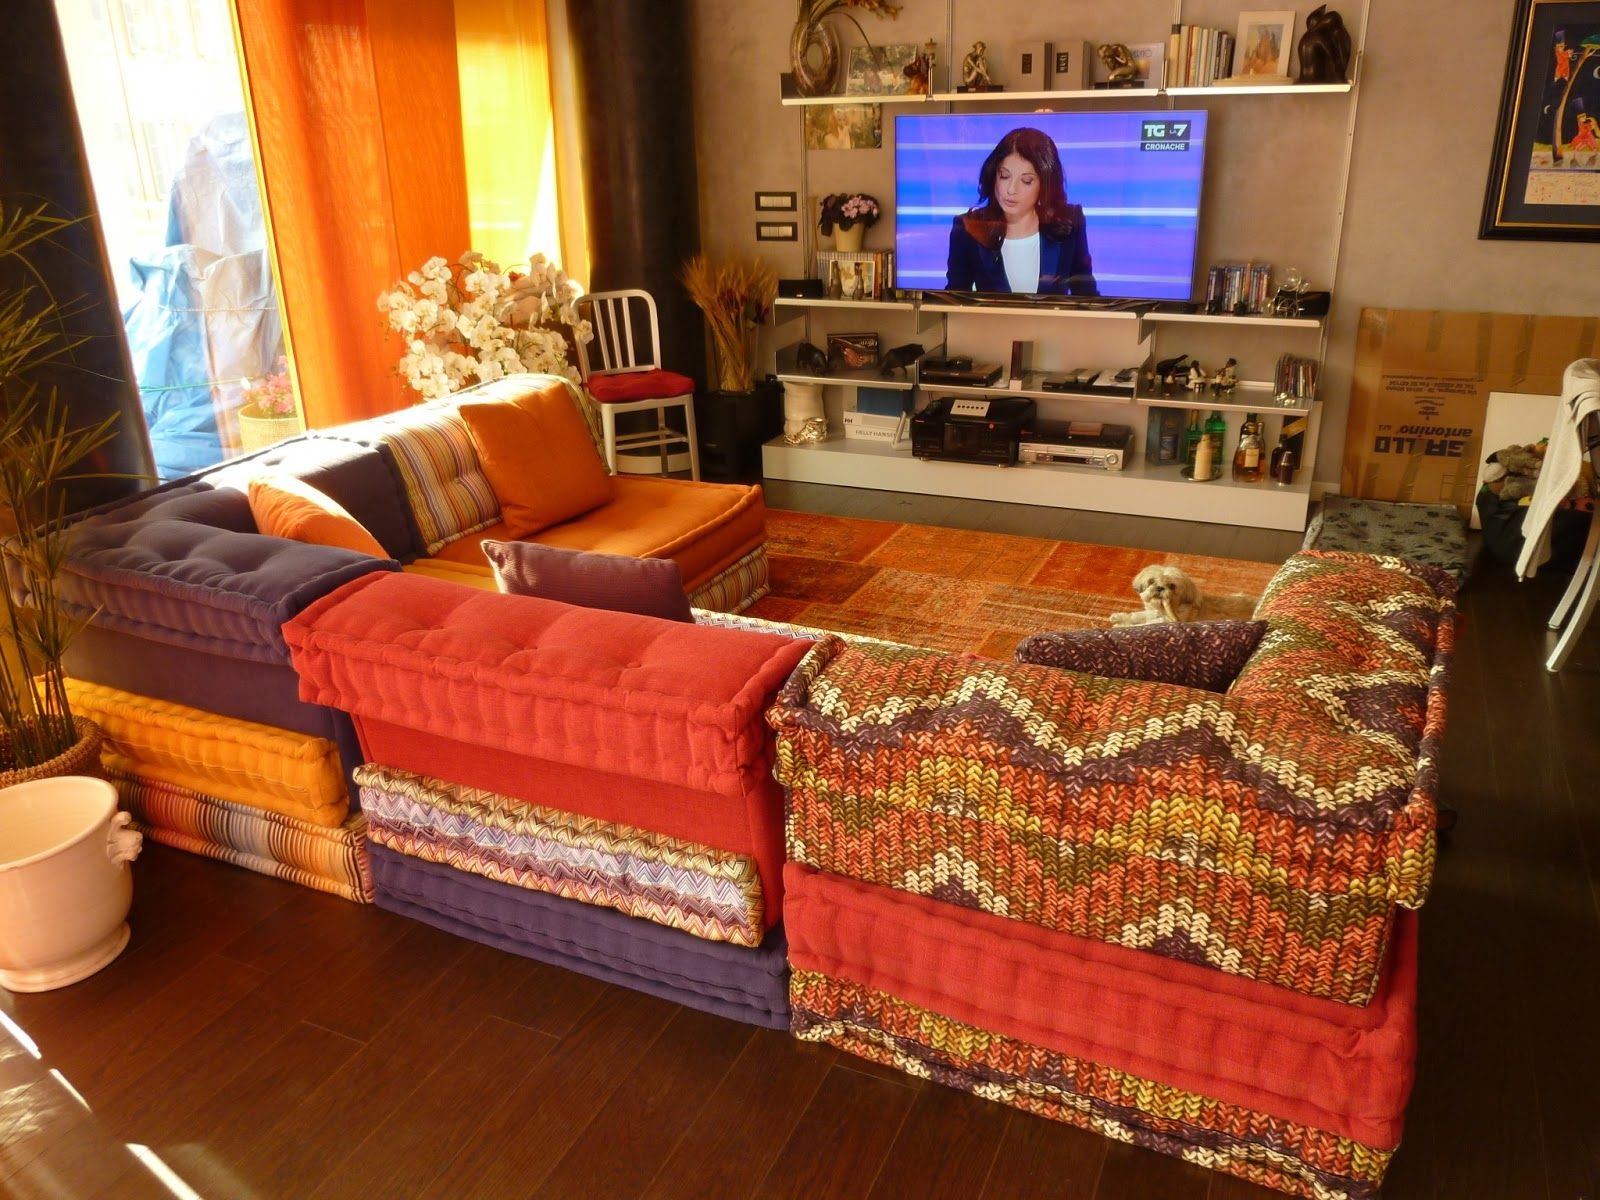 roche bobois mah jong missoni google search modular setting sofas pinterest mah jong. Black Bedroom Furniture Sets. Home Design Ideas